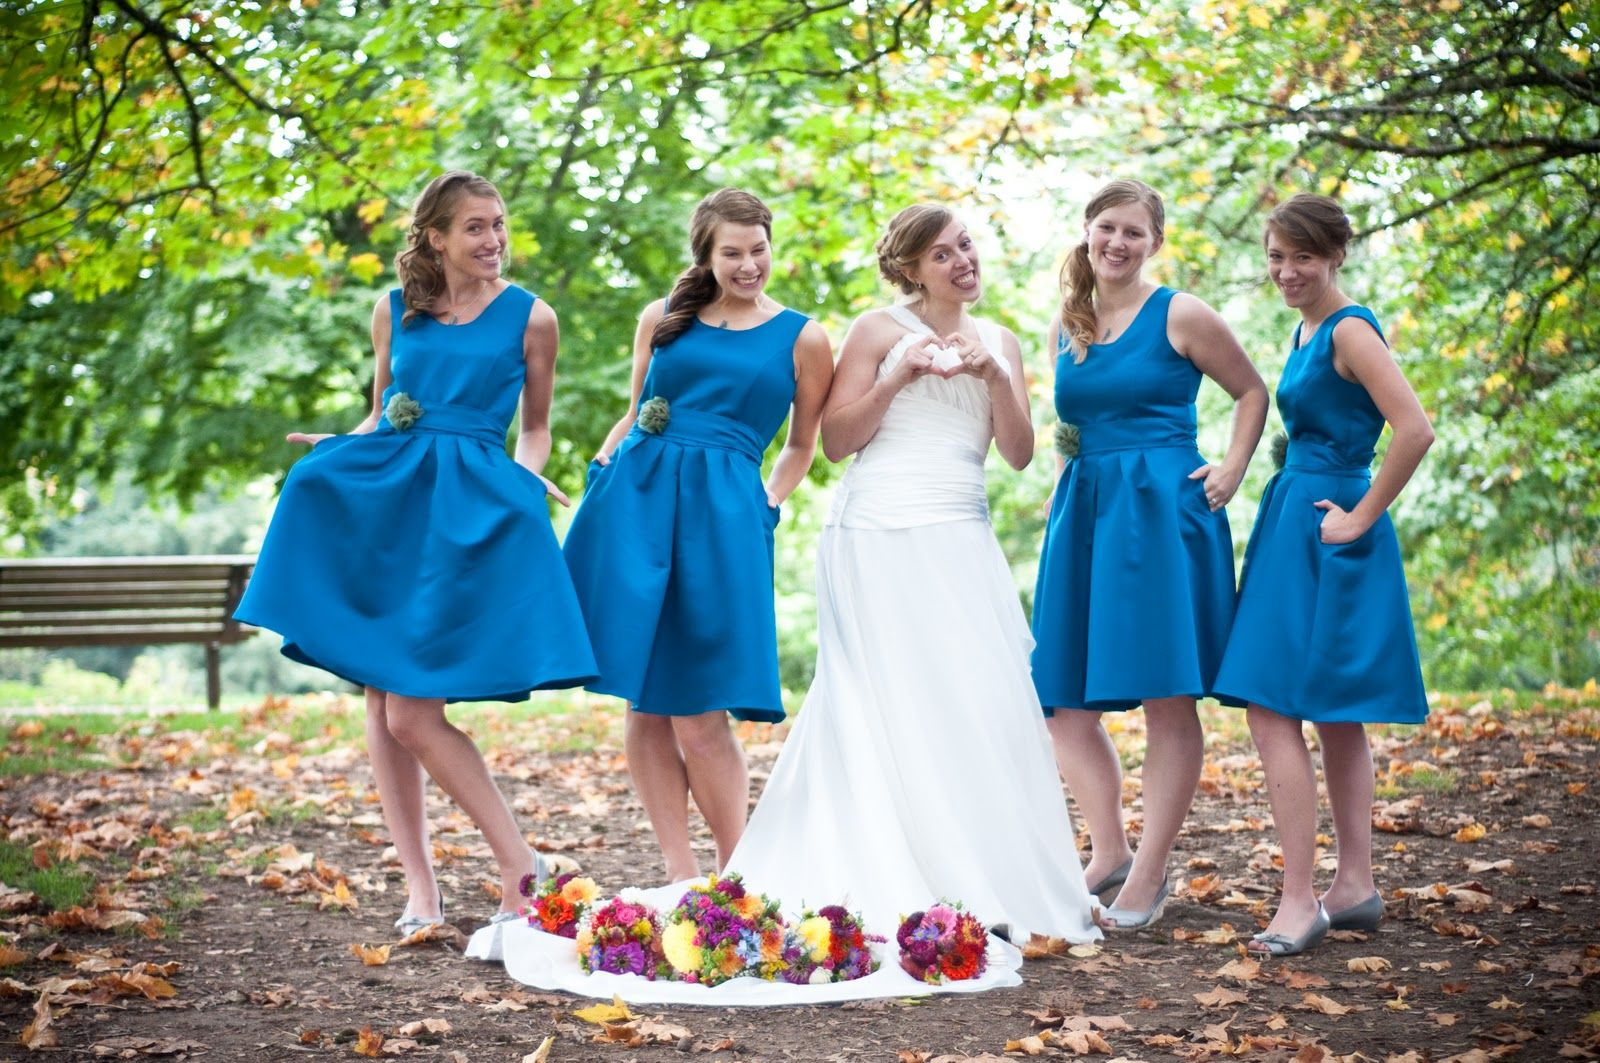 Blue bridesmaids dresses mt tabor portland oregon wedding blue bridesmaids dresses mt tabor portland oregon wedding bend oregon photographer ombrellifo Image collections